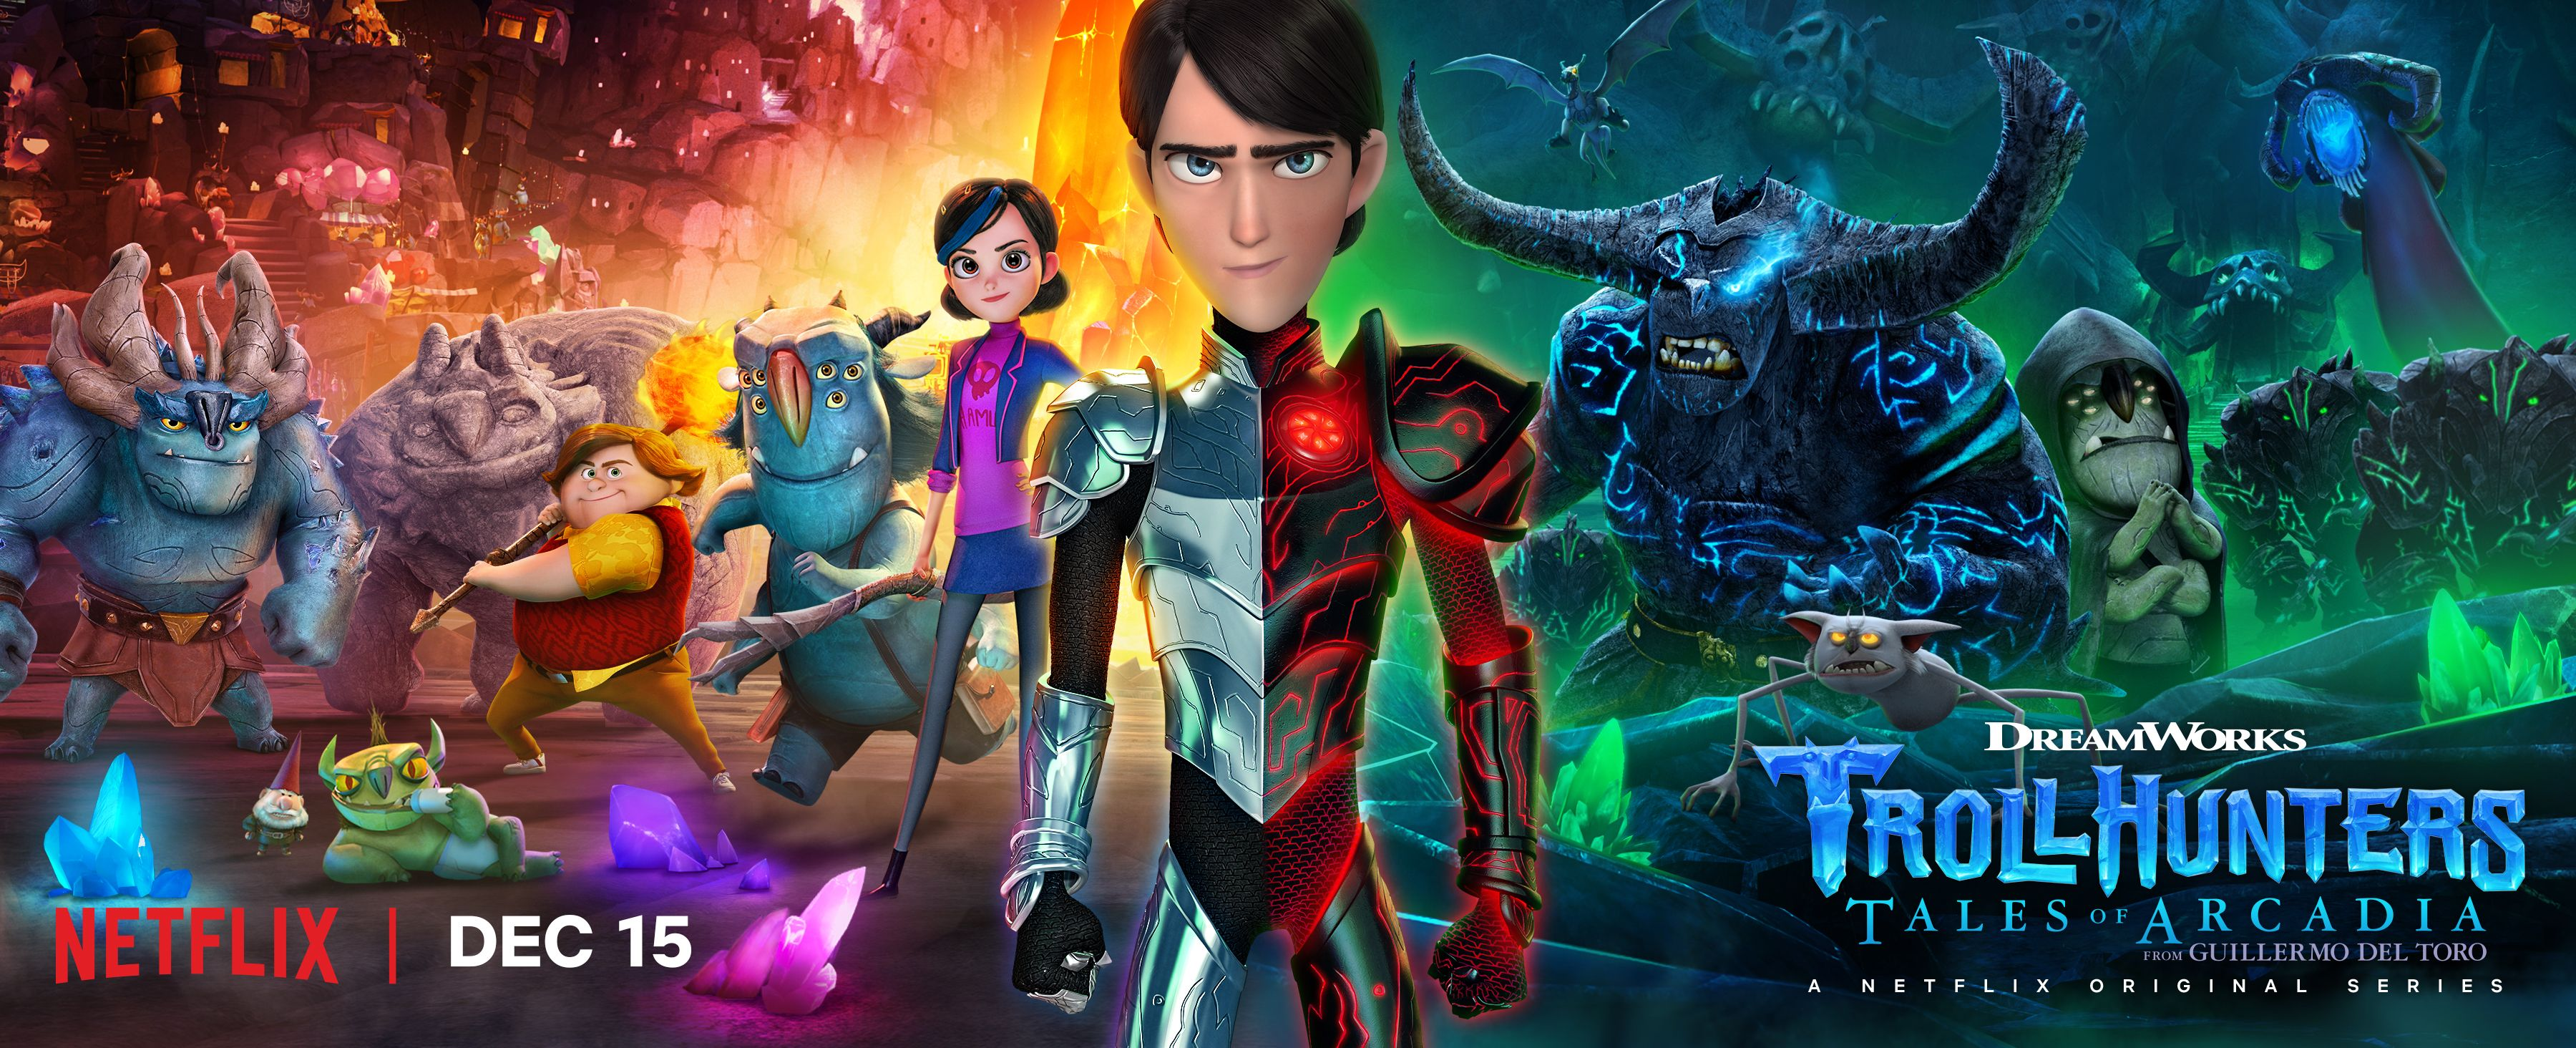 Trollhunters Season 2 Review: Magic Returns to Netflix